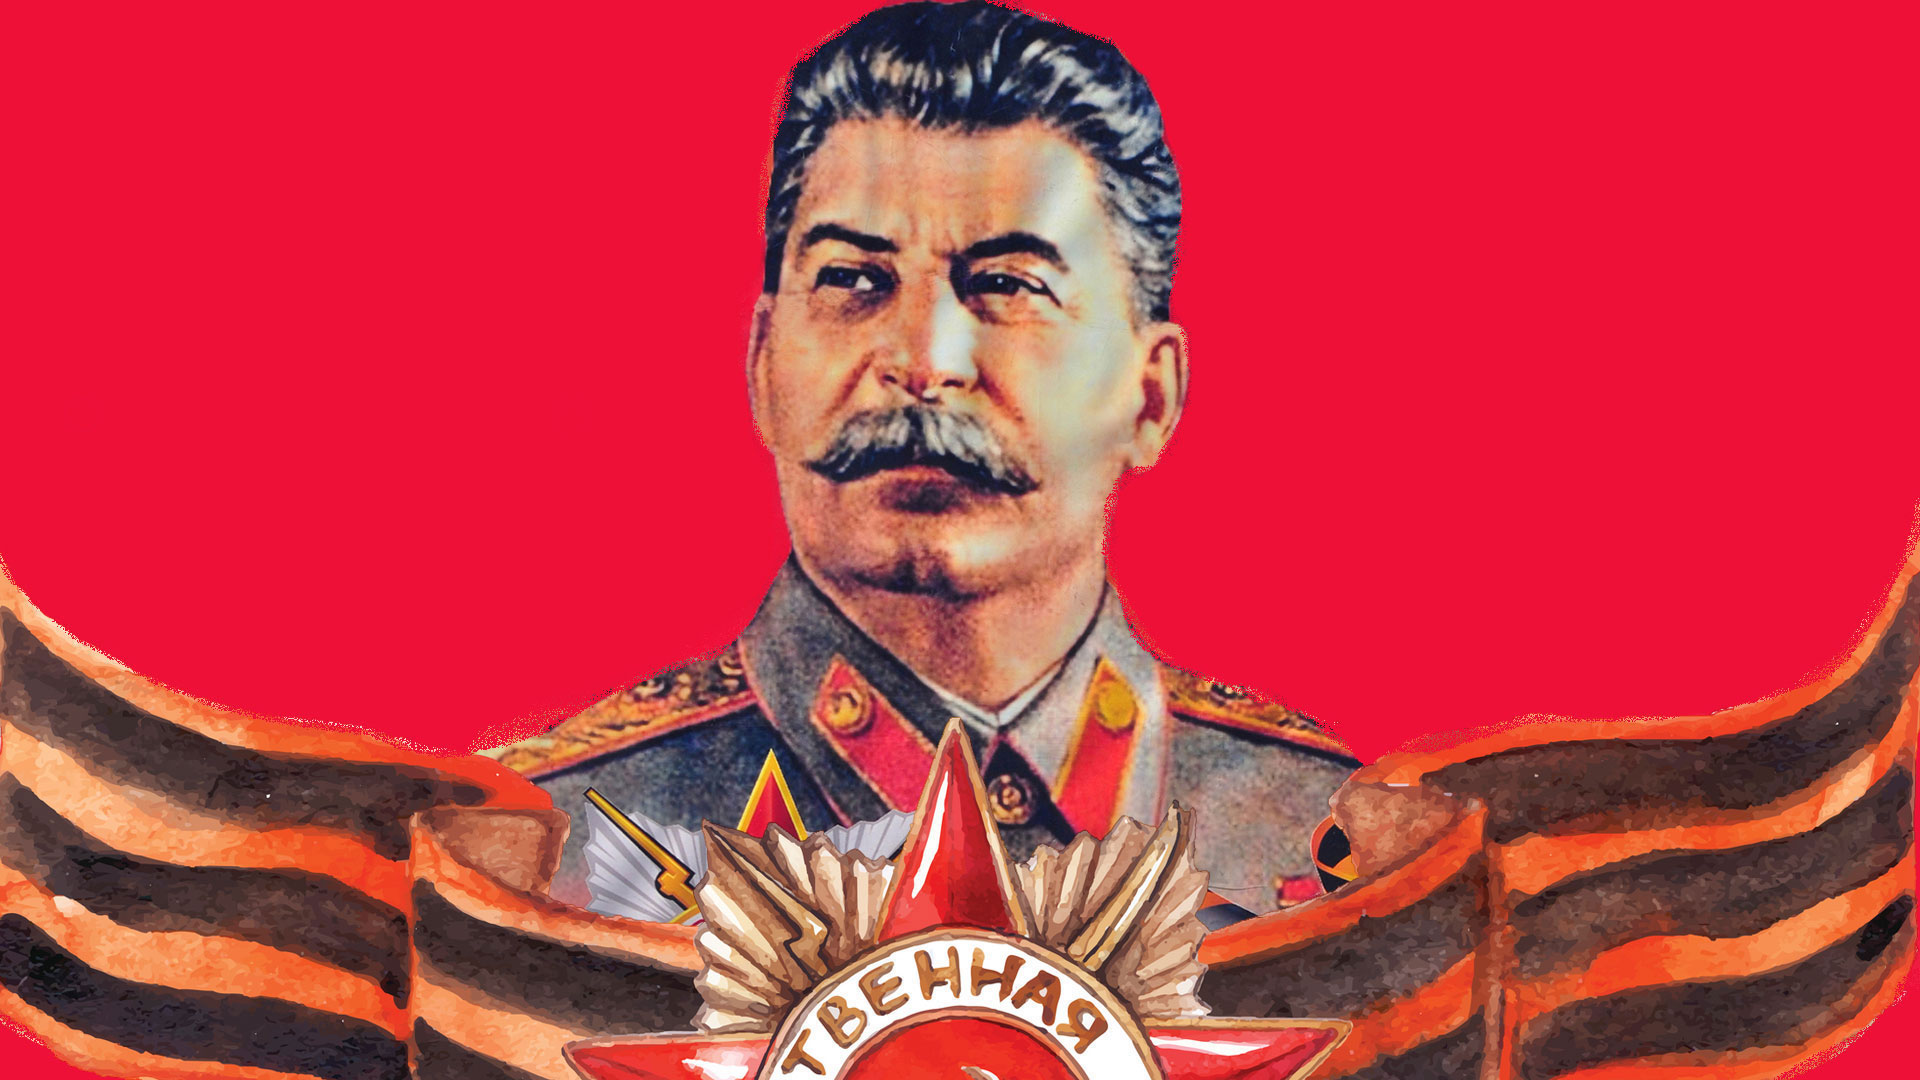 a biography of joseph stalin the leader of the ussr On 16th may 1934, joseph stalin called for the central committee of the communist party to take action in controlling the teaching of history in the soviet union as david r egan pointed out in joseph stalin (2007), this action eventually led to the rewriting of russian history and a new phase in soviet historiography.